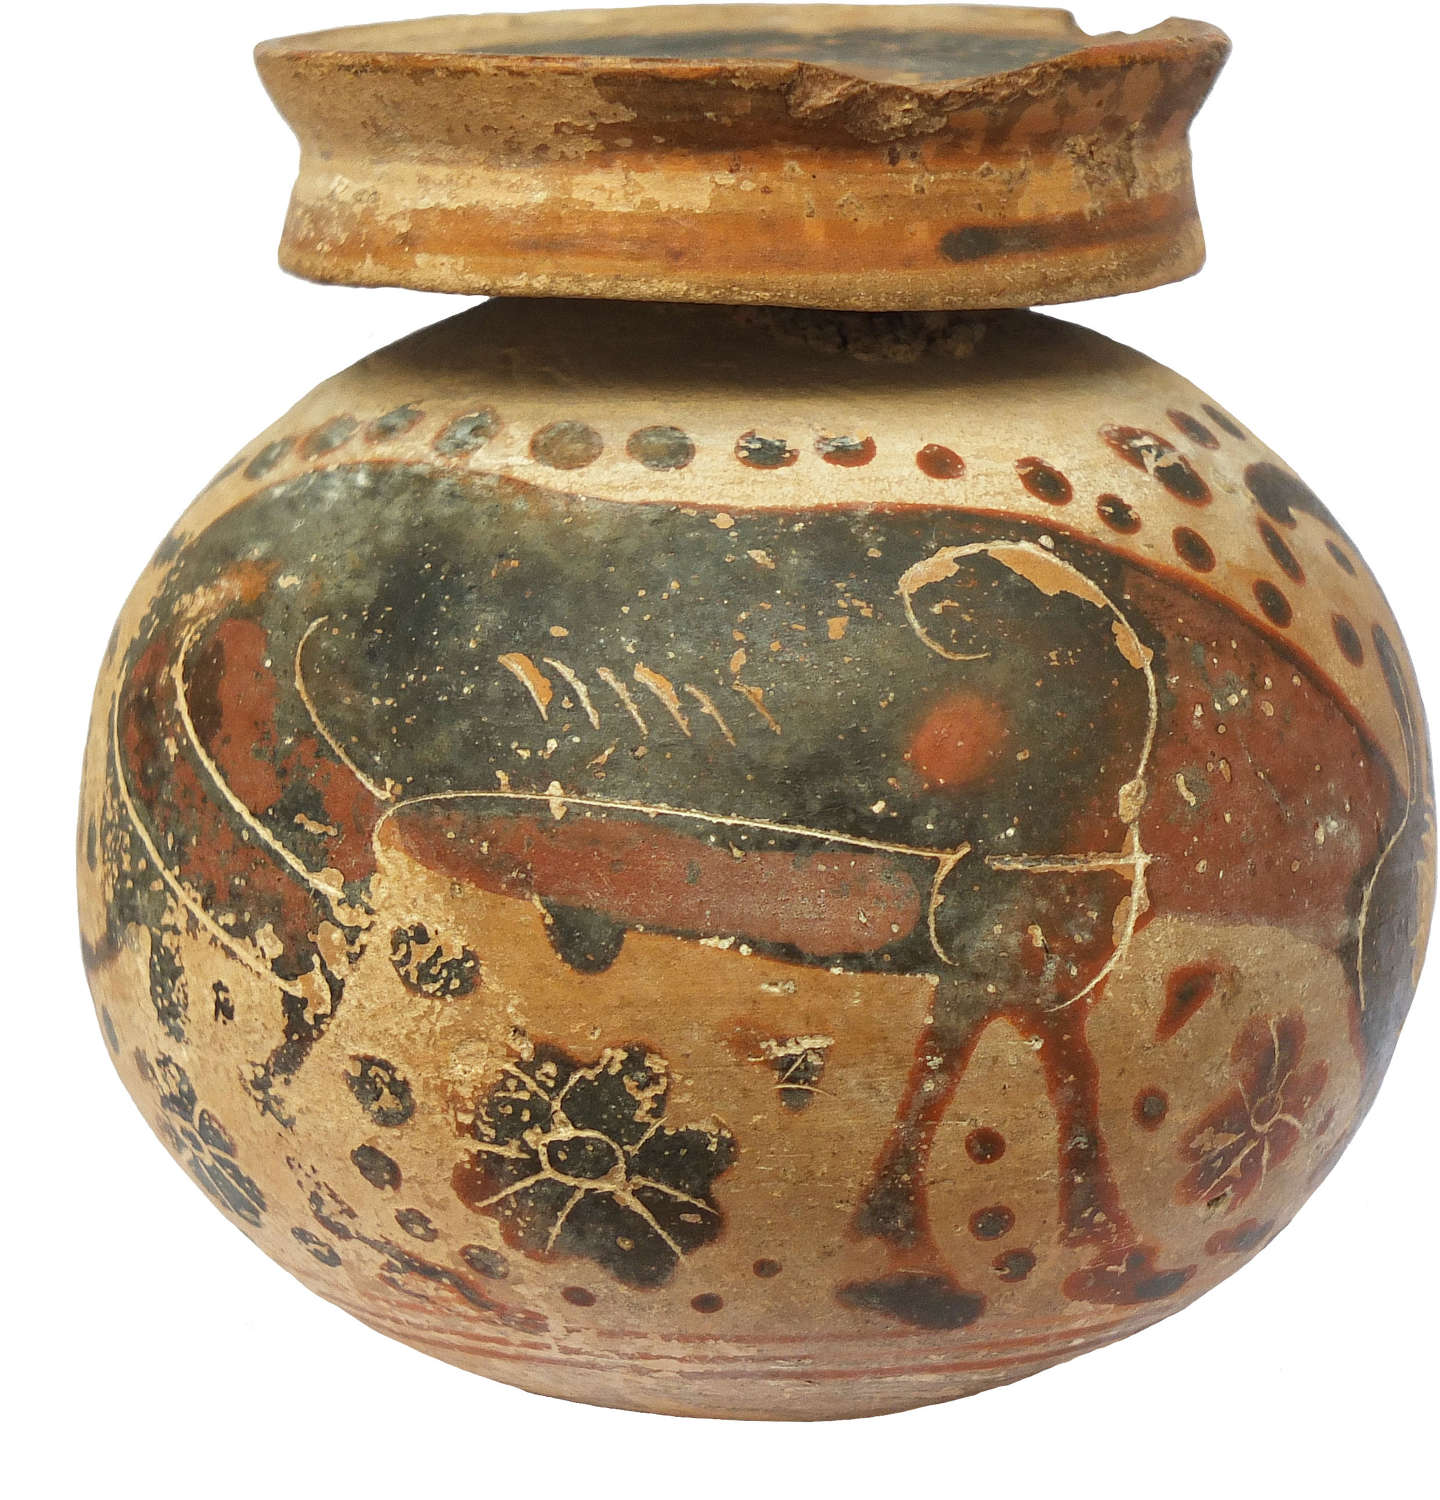 A Greek Corinthian aryballos decorated with a grazing stag